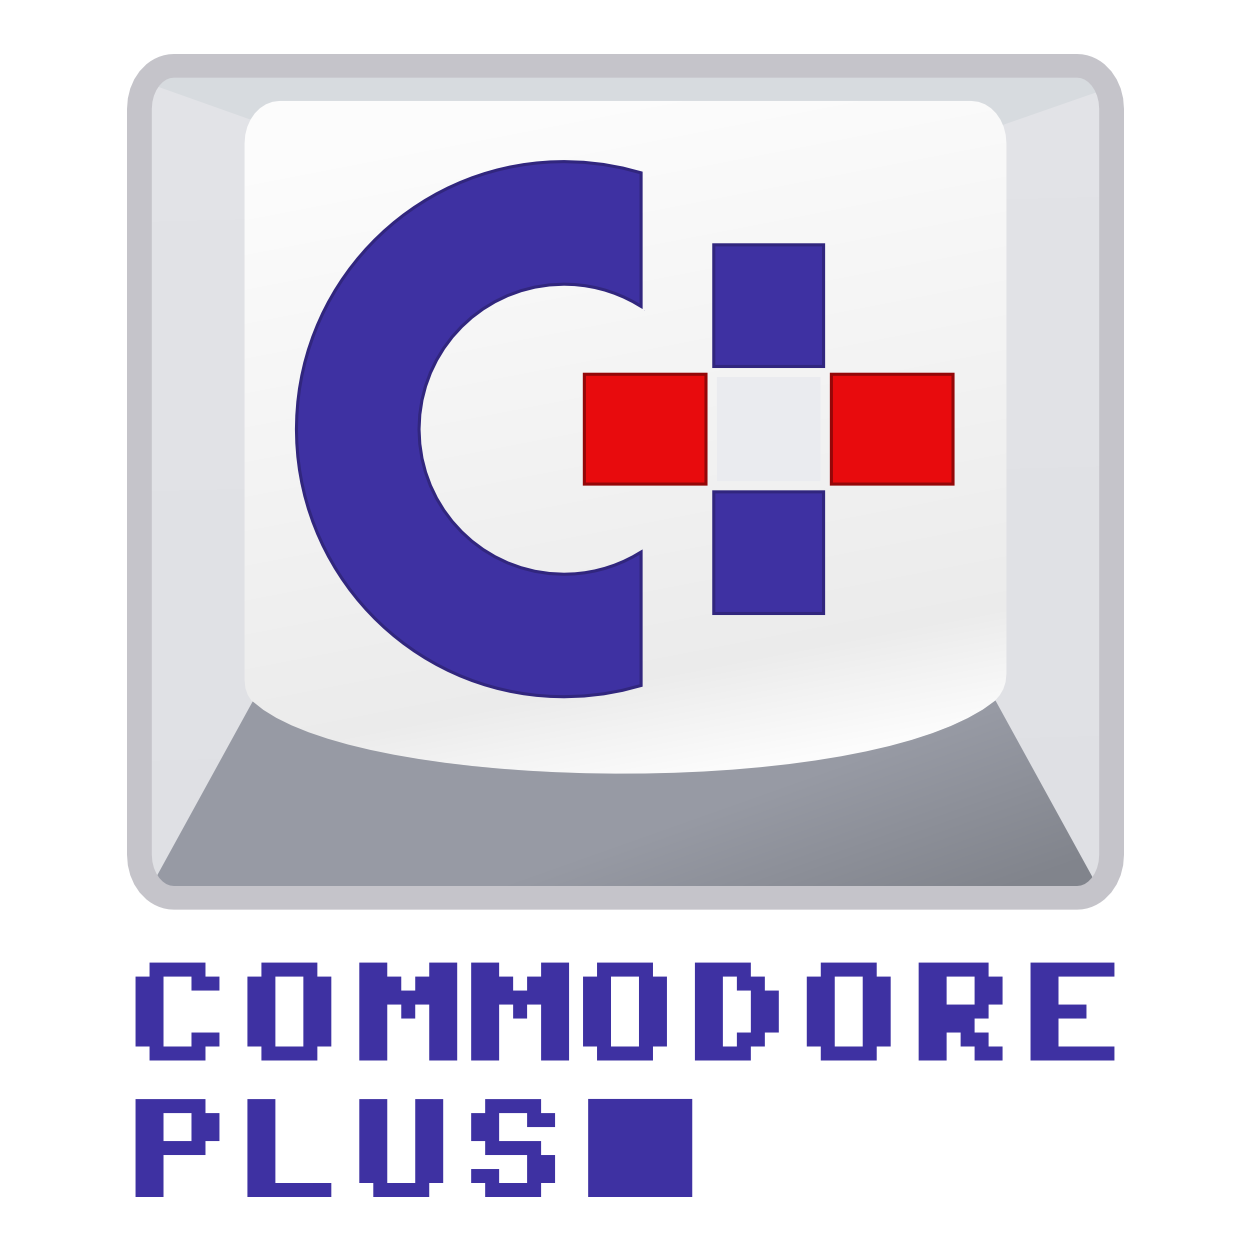 Commodore Plus C+ logo